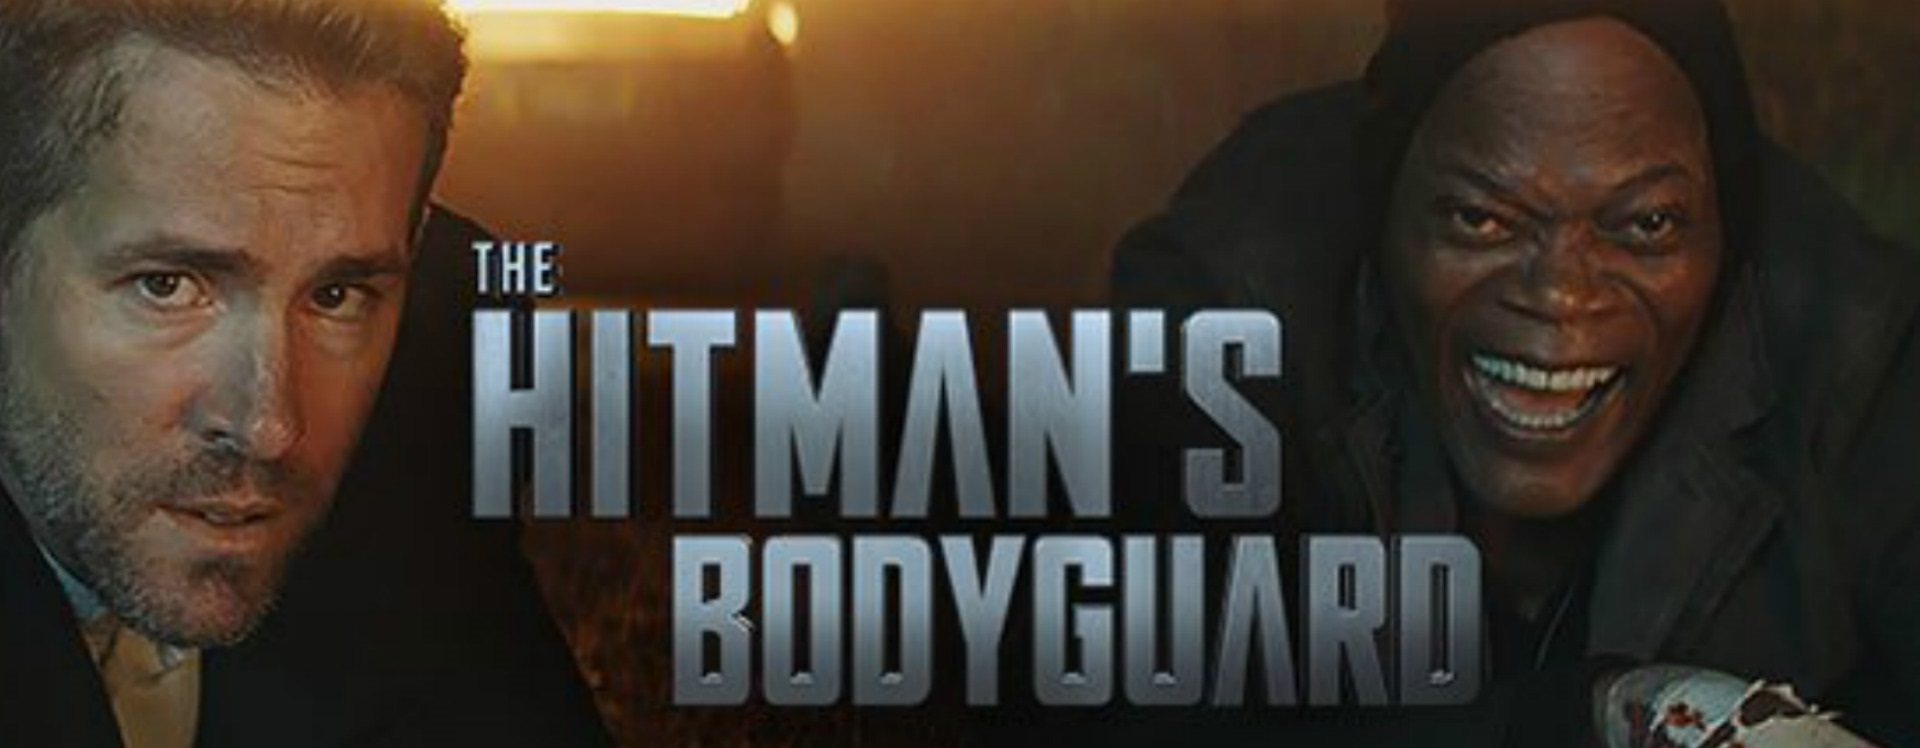 بوستر فيلم The Hitman's Bodyguard